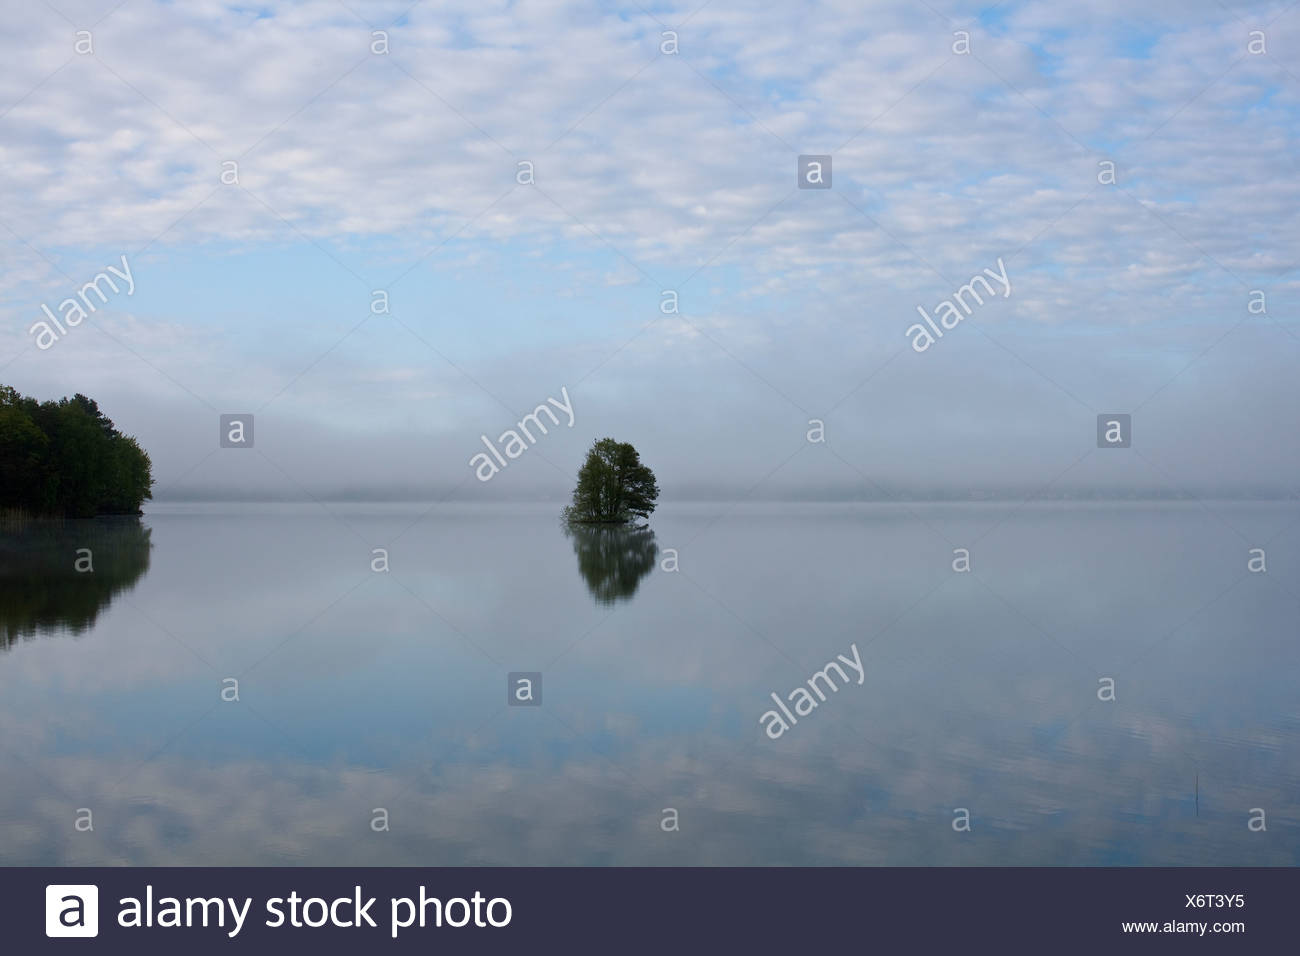 Scenic landscape with water and lonely tree - Stock Image